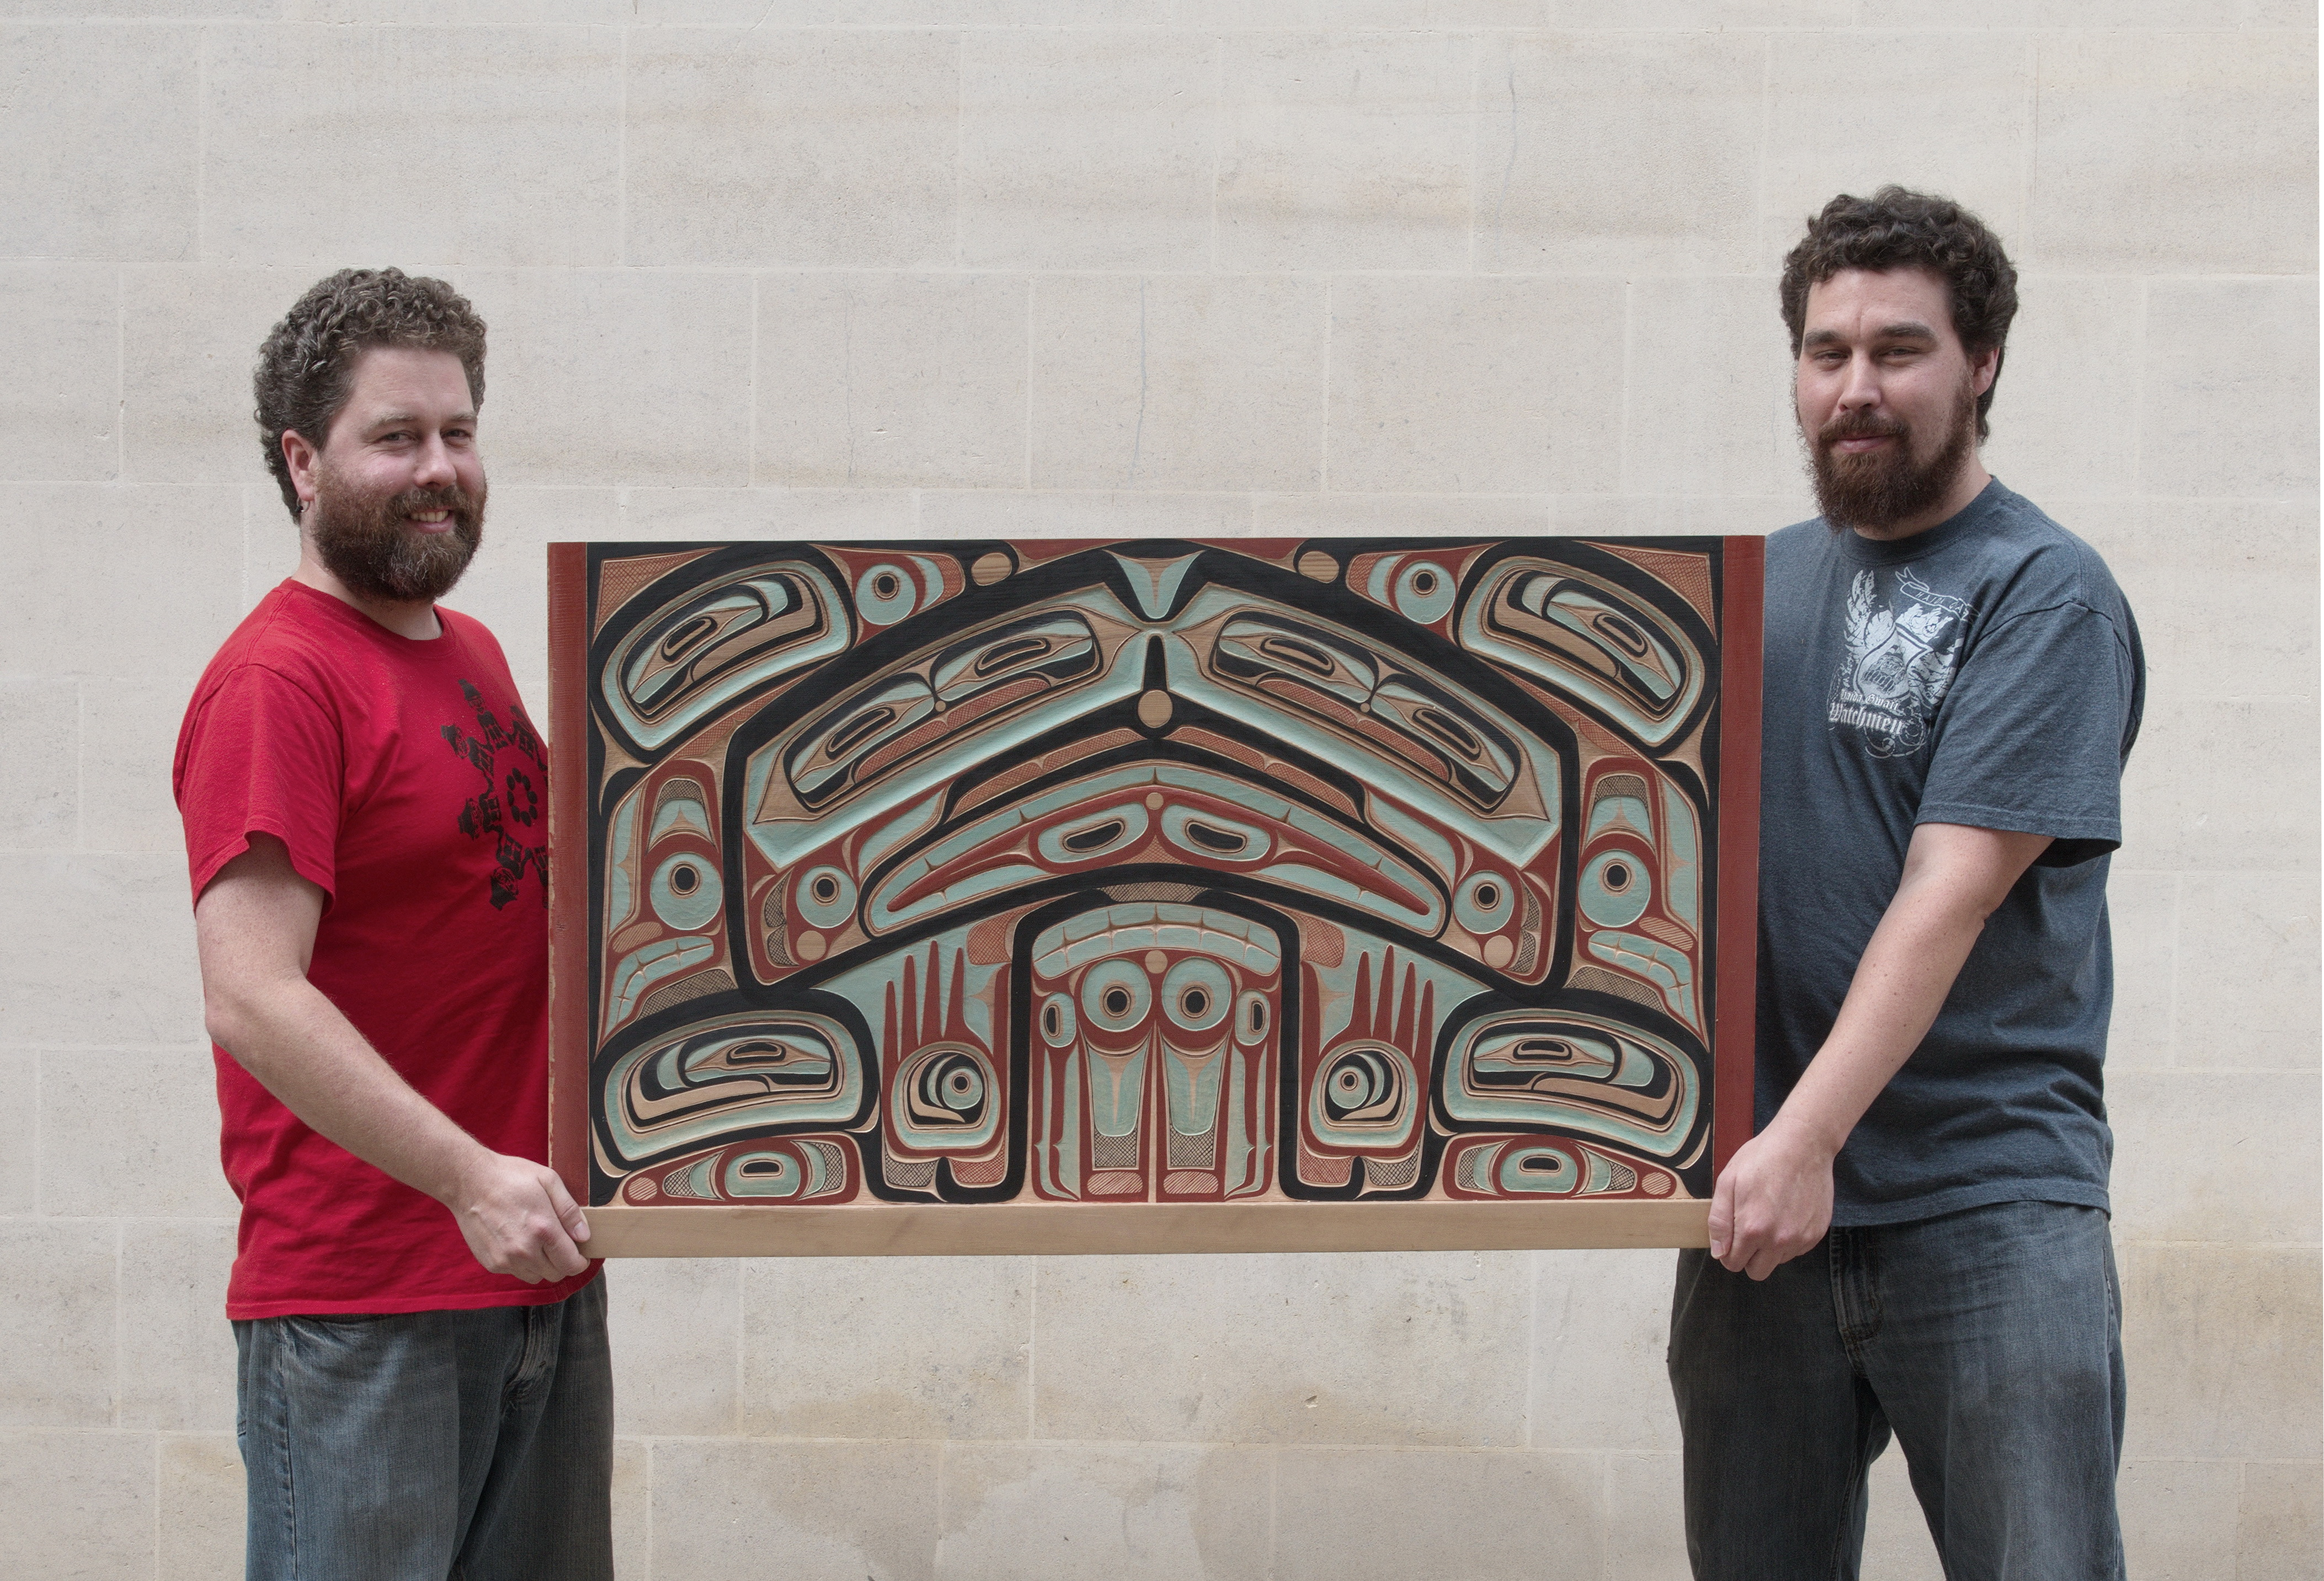 Jaalen and Gwaai holding the replica box bringing it home on October 10th. Photo: Pitt Rivers Museum/Michael Peckett